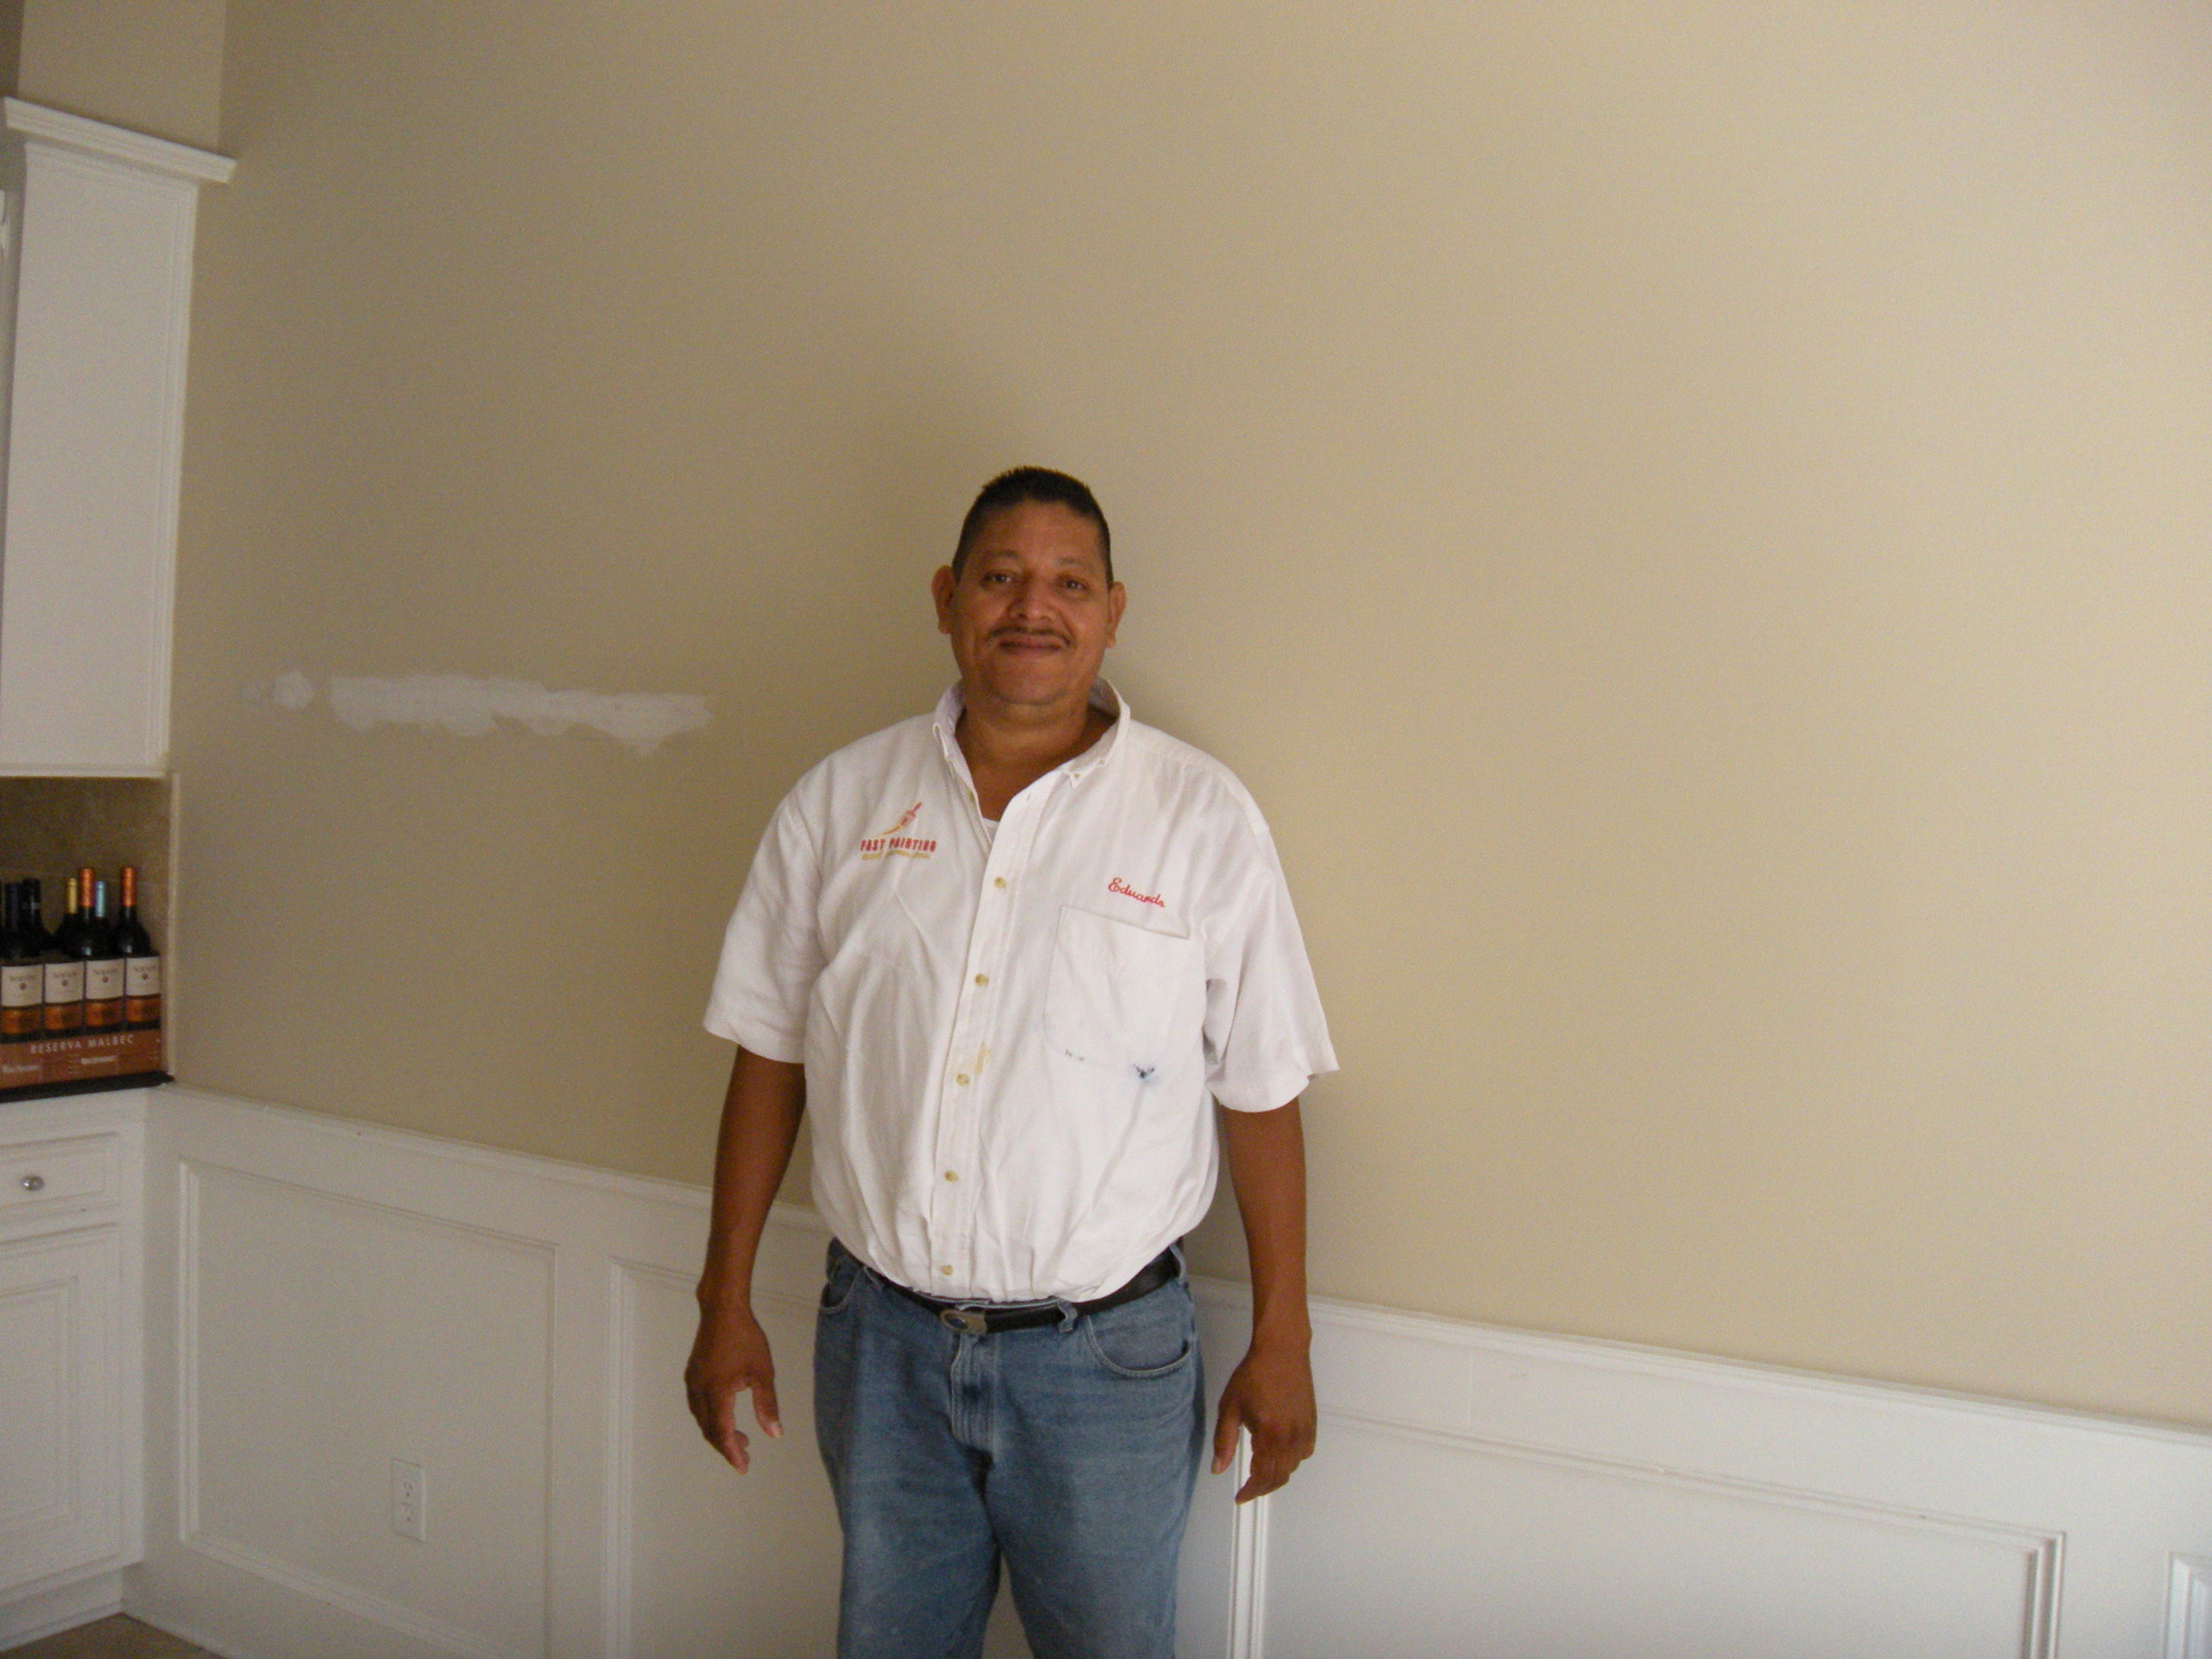 Eduardo, our contractor. His company is called Fast Paint, but he does more than paint. Works hard and does a good job. Honest and polite crew. The wine on the counter is mine.